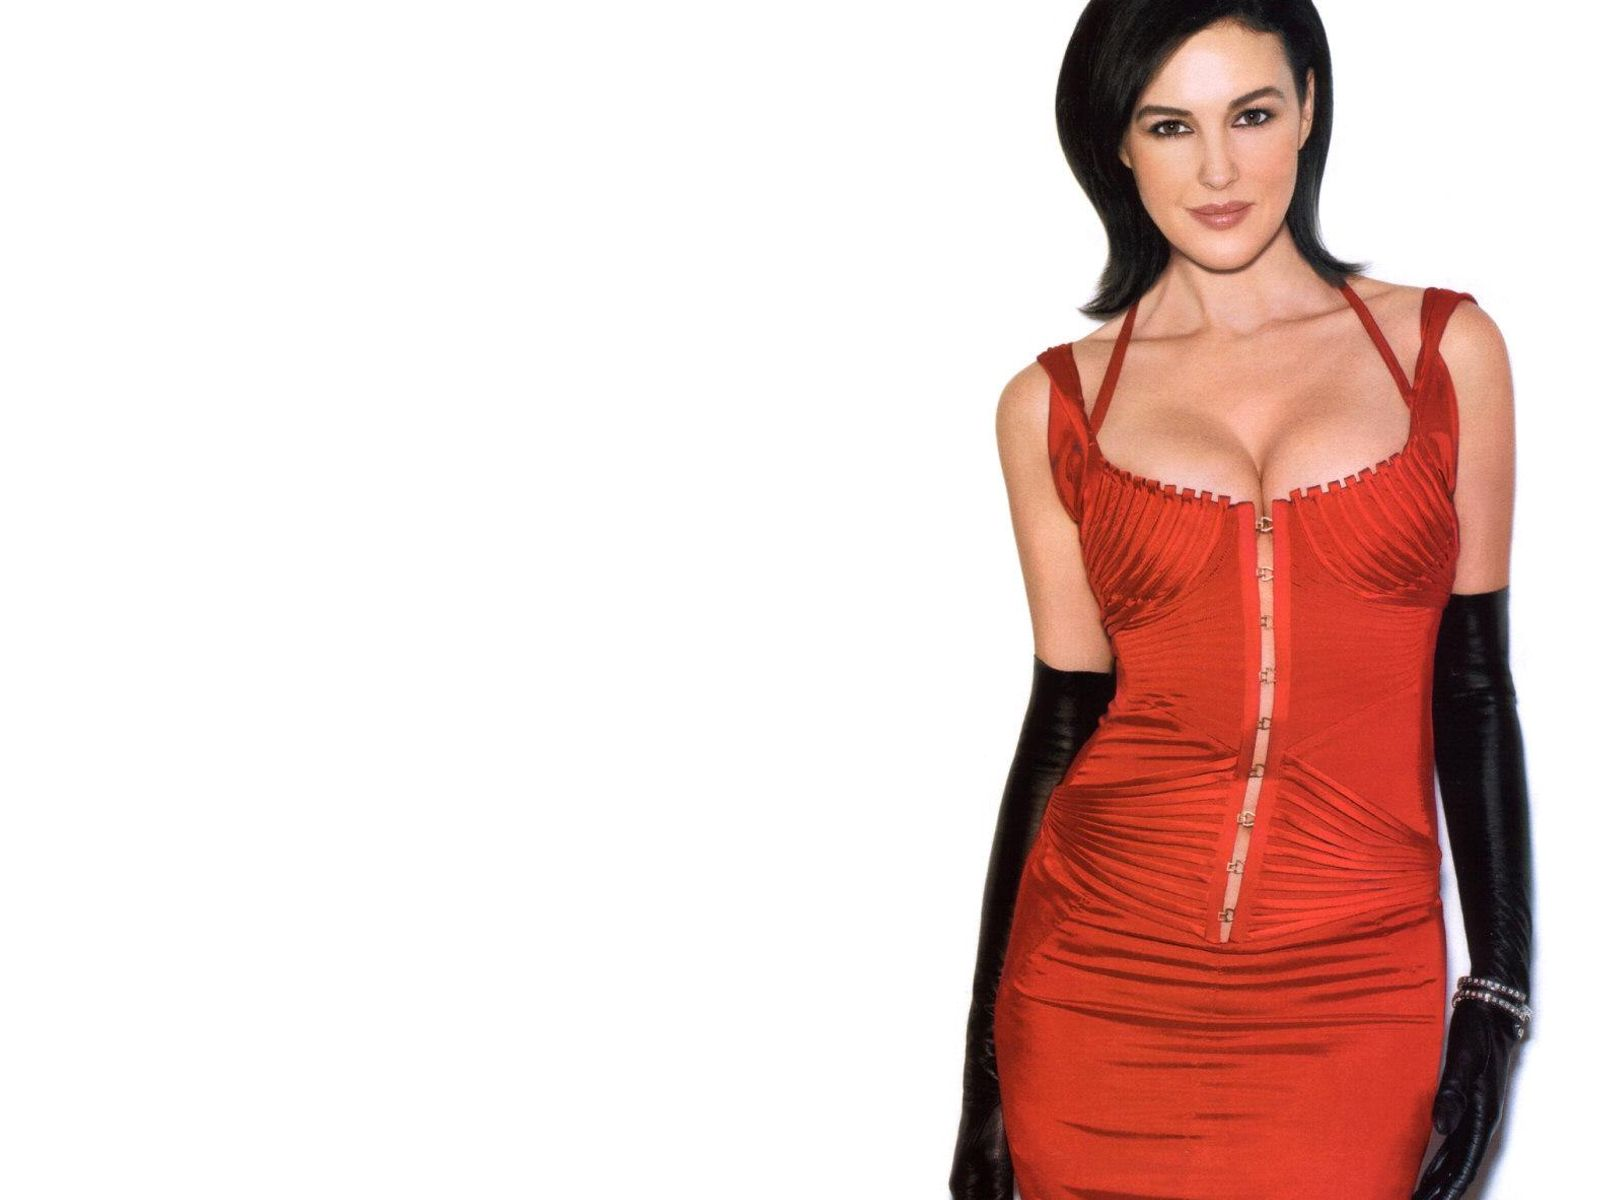 http://2.bp.blogspot.com/-m6TZE6PWy_E/Tt9NGsDj78I/AAAAAAAADZI/OMrOPijU_Yo/s1600/Monica+Bellucci+in+a+beautiful+red+dress.jpg